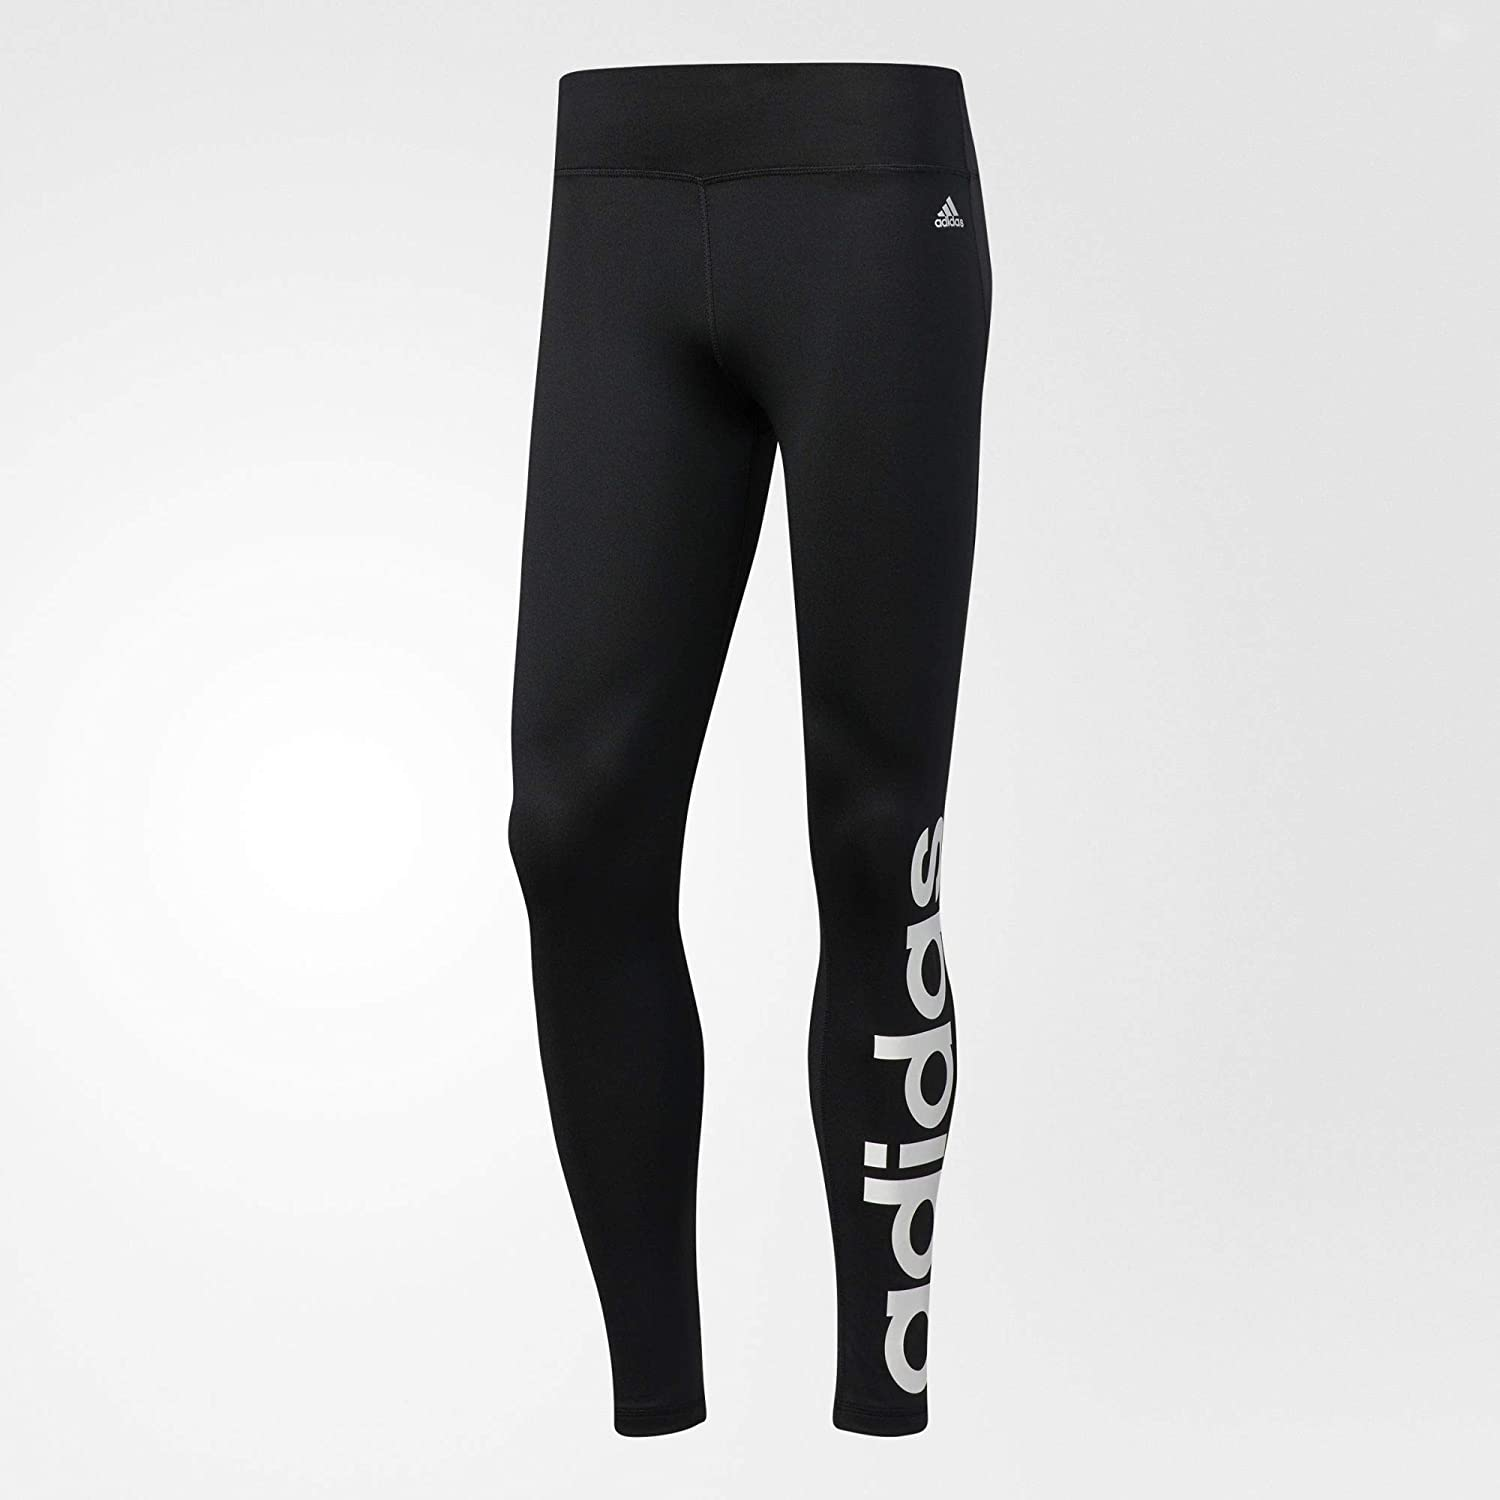 787faeaf57d24 Amazon.com: adidas Women's Fab Climalite Essentials Linear Training Tights  Pants: Clothing